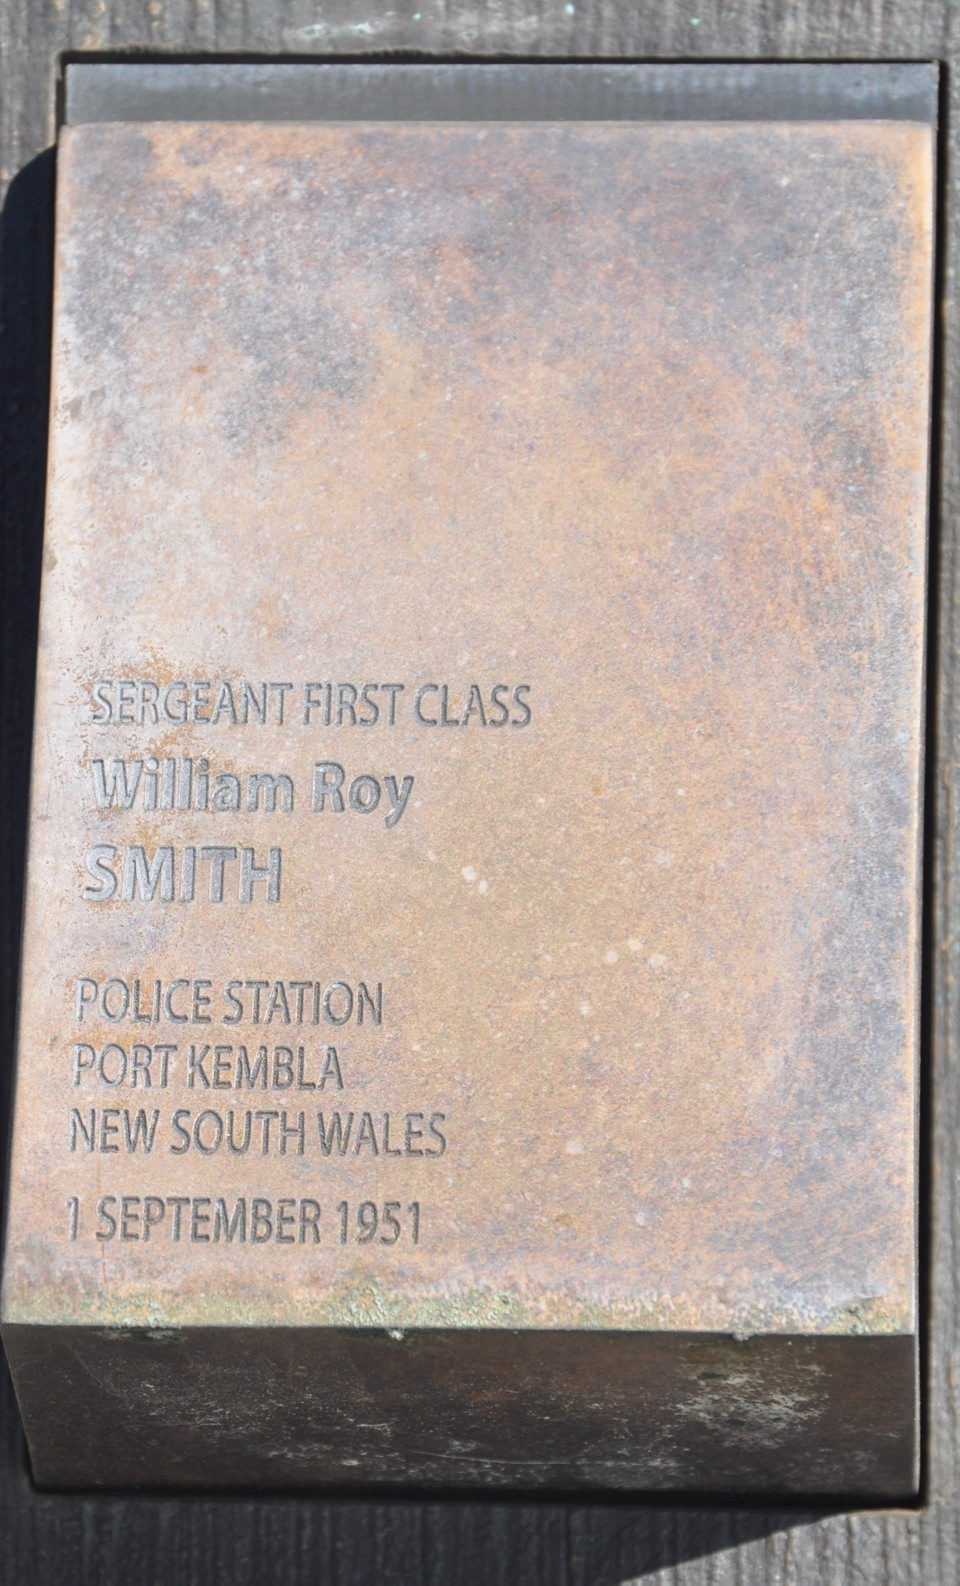 Sgt 1/Class William Roy SMITH touch plate in Canberra